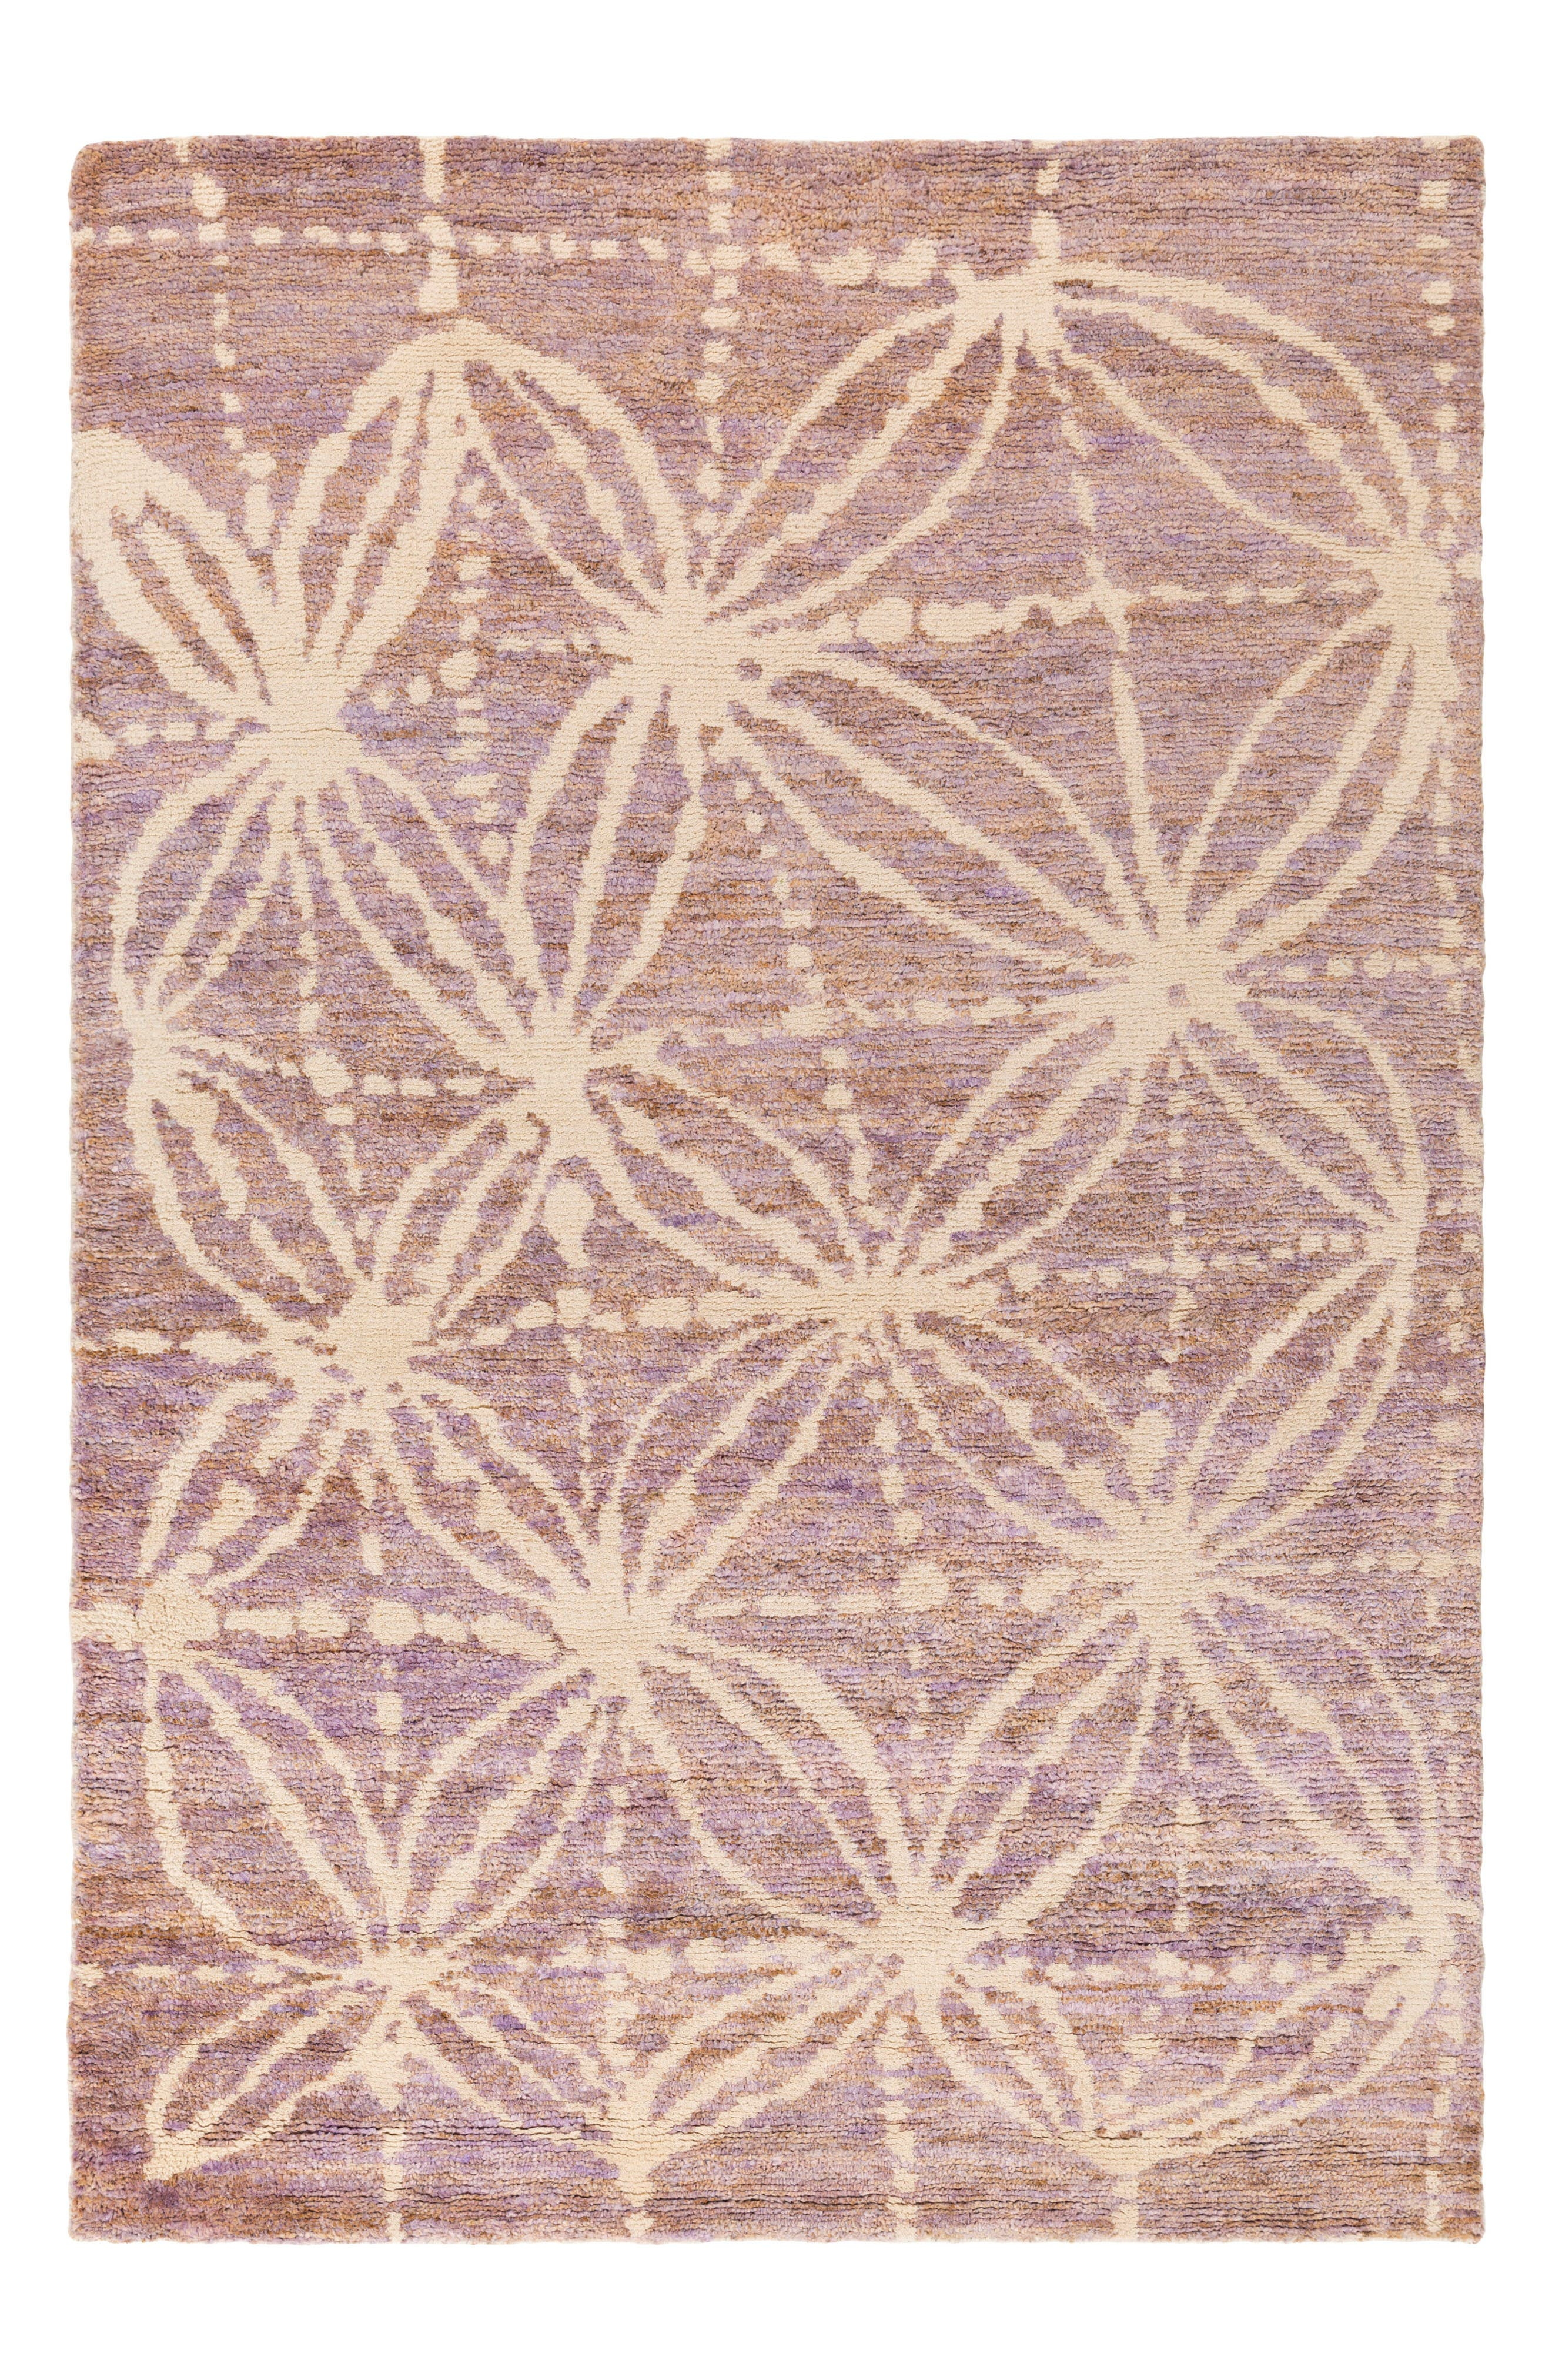 Orinocco Area Rug,                             Main thumbnail 1, color,                             Purple